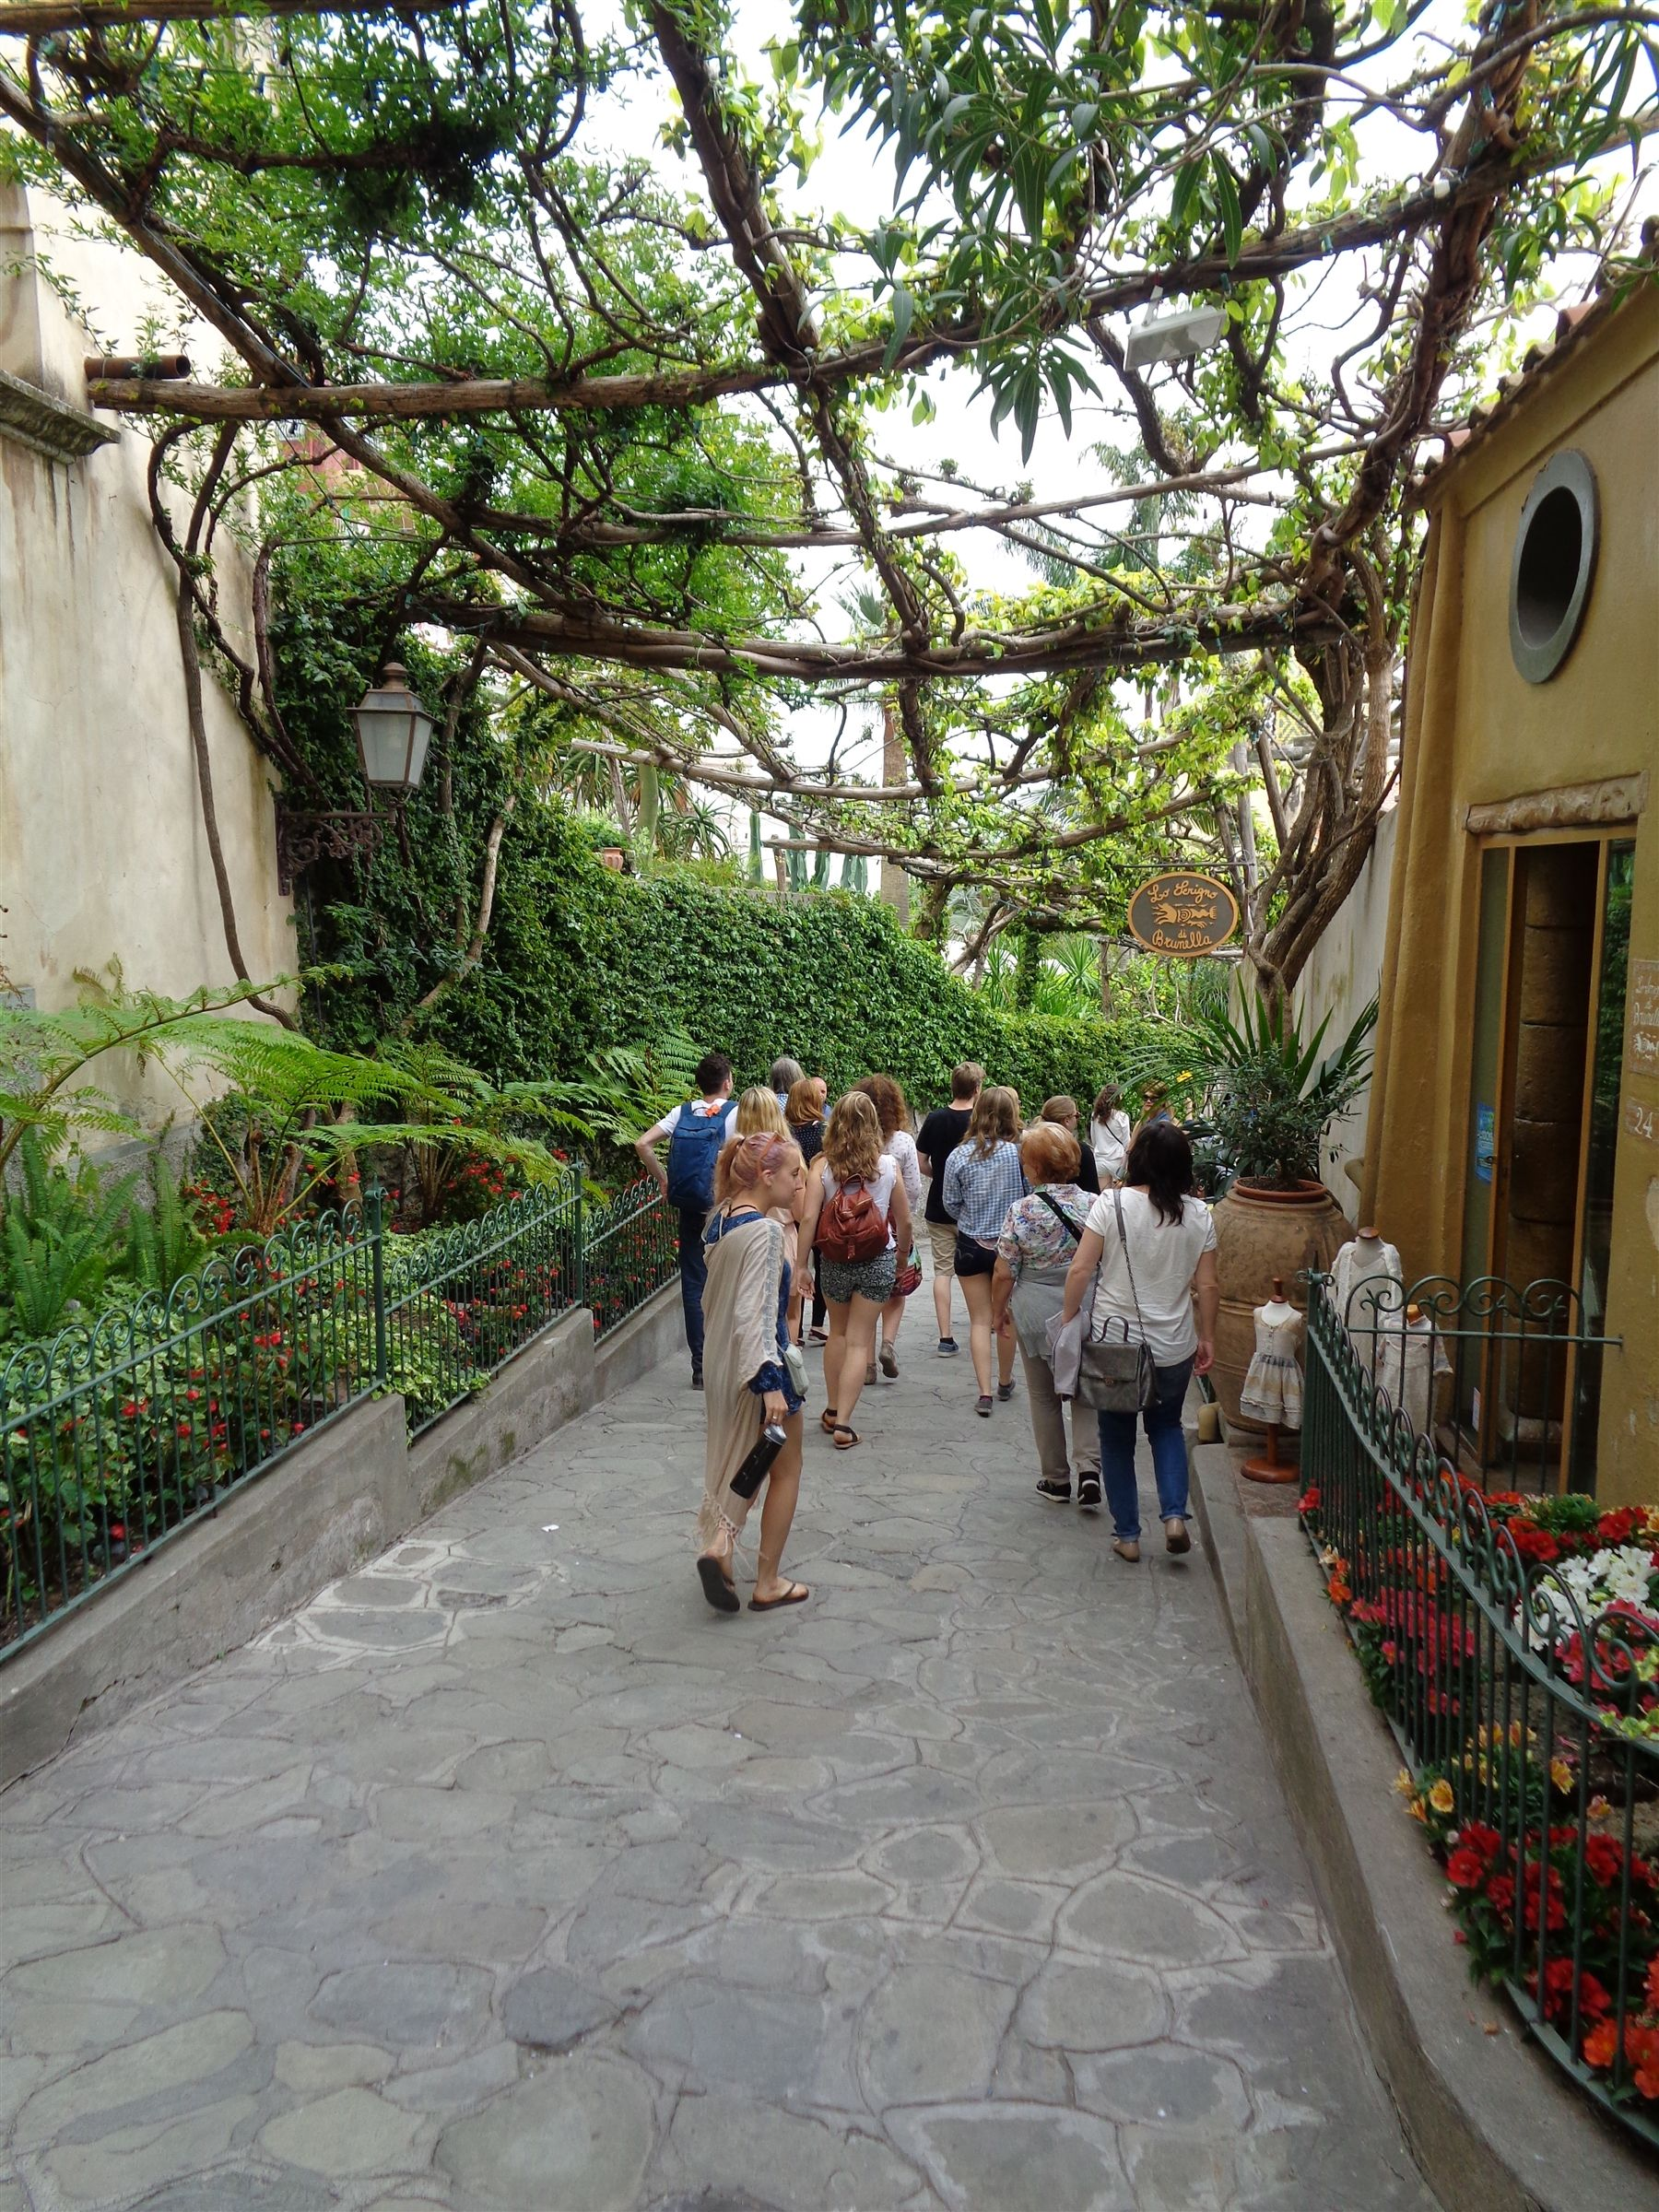 Our Italy Projects Block strolling into the town of Positano on the Amalfi Coast.